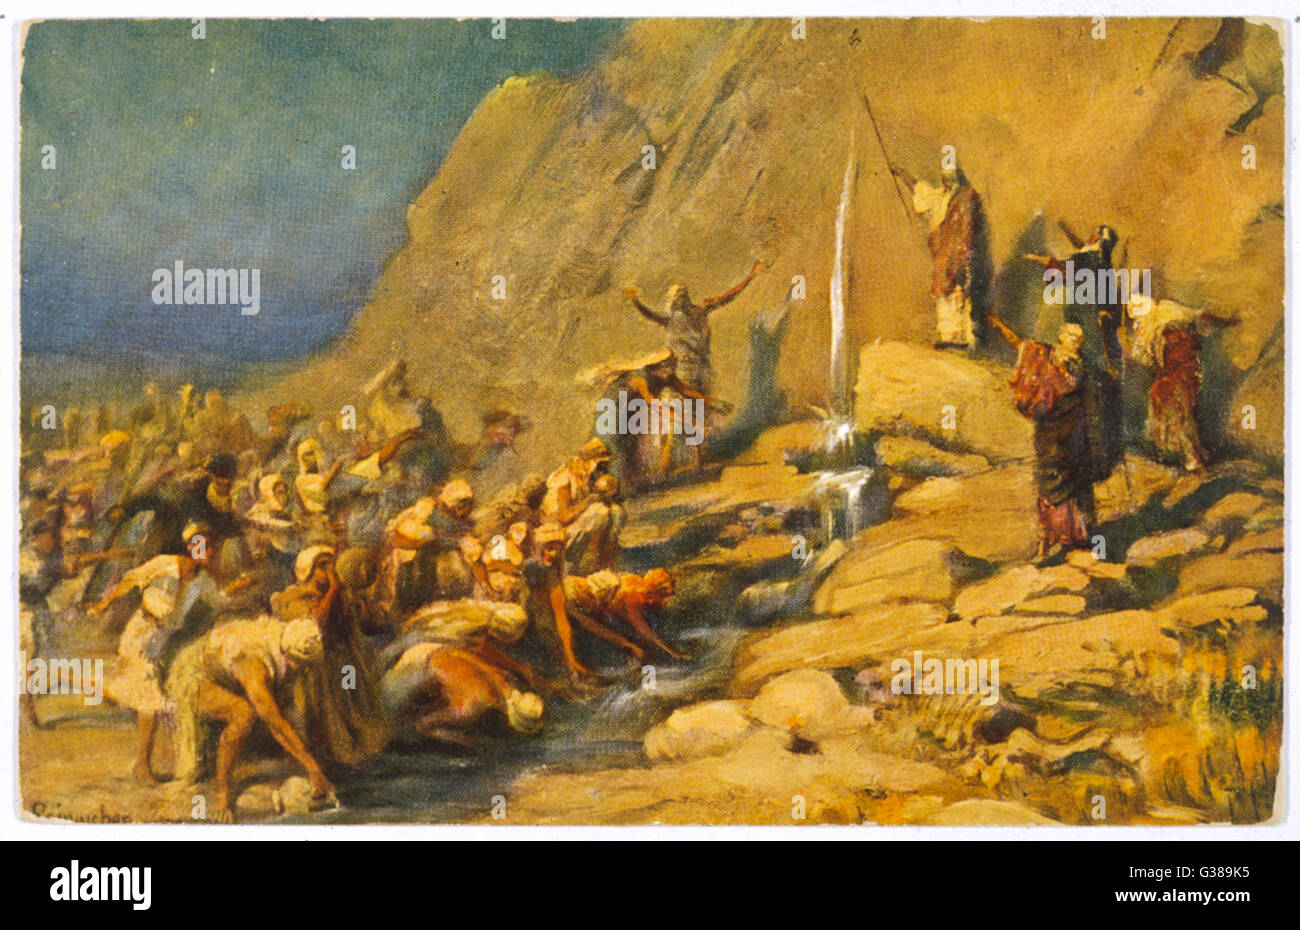 During the Exodus, Moses  strikes a rock and obtains a  supply of water for the  Israelites - Stock Image